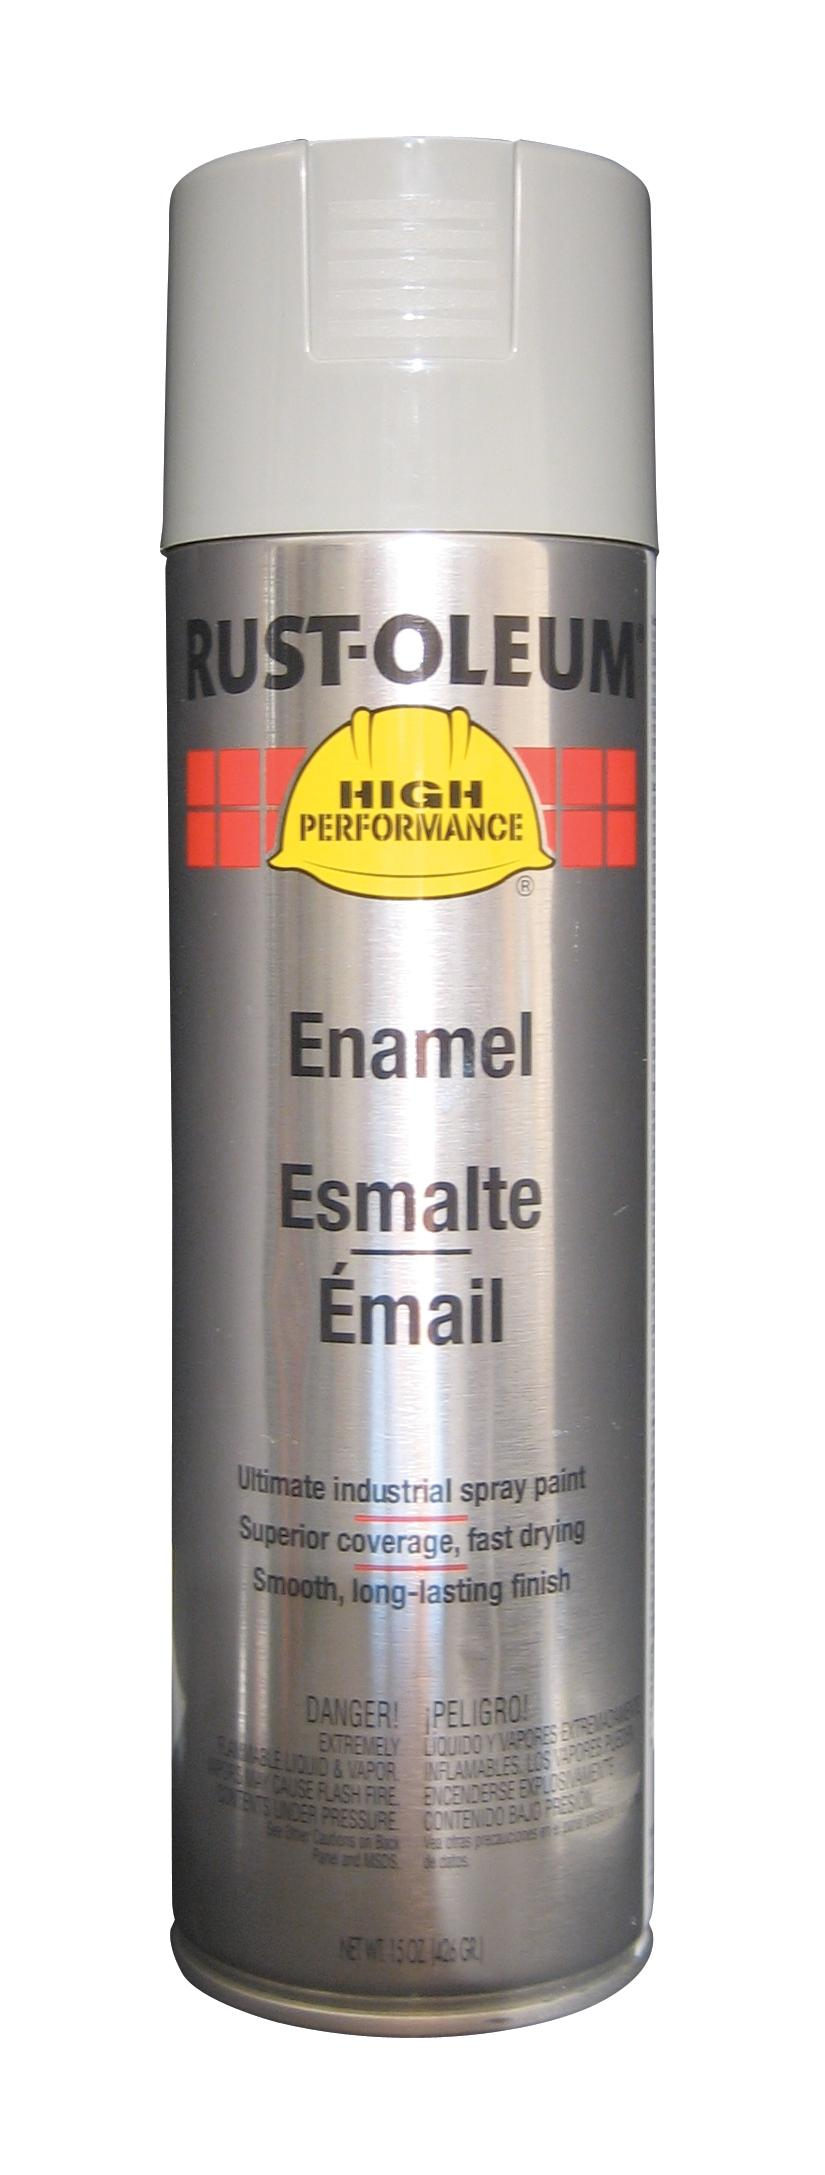 Rust-Oleum Spray Paint: Light Machinery Gray, Gloss, 2 hr Dry Time, 12 to 20 sq ft, 15 fl oz Container Size